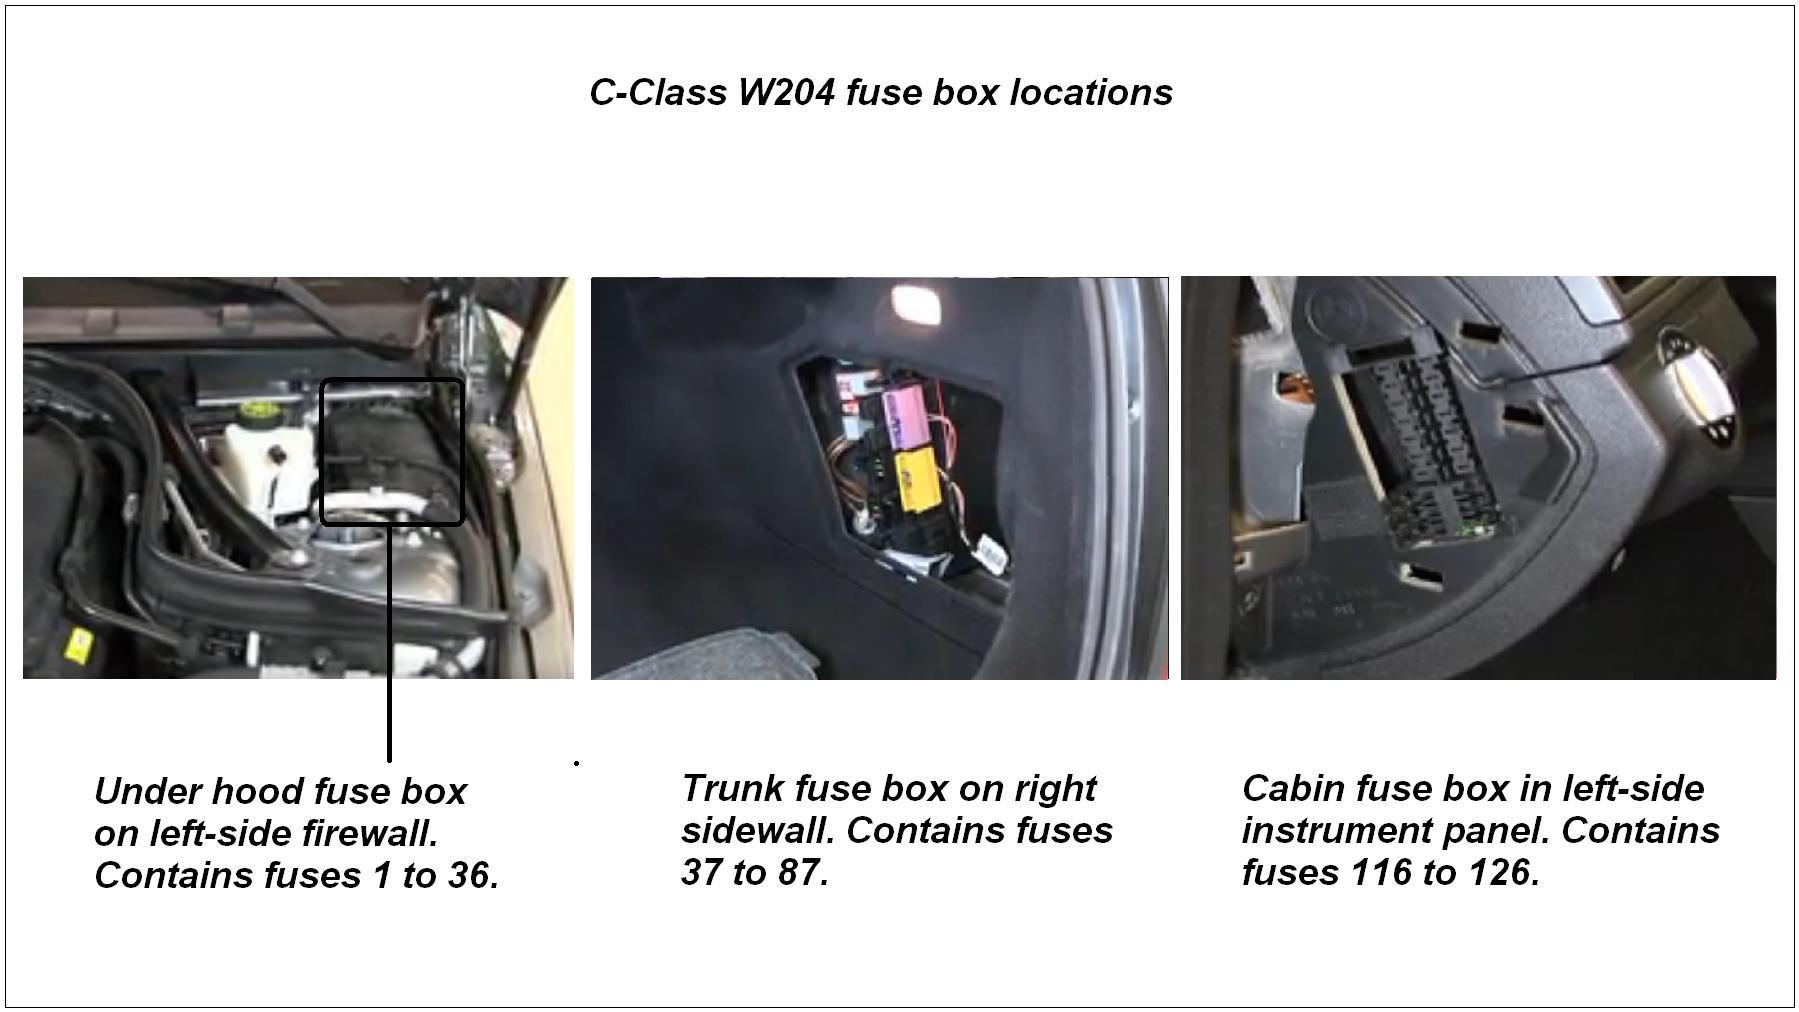 W204fuseboxlocations1799x1012 65419 mercedes benz c class w204 fuse diagrams and commonly blown fuses On a 2006 Mercedes -Benz S500 Fuse Chart at panicattacktreatment.co